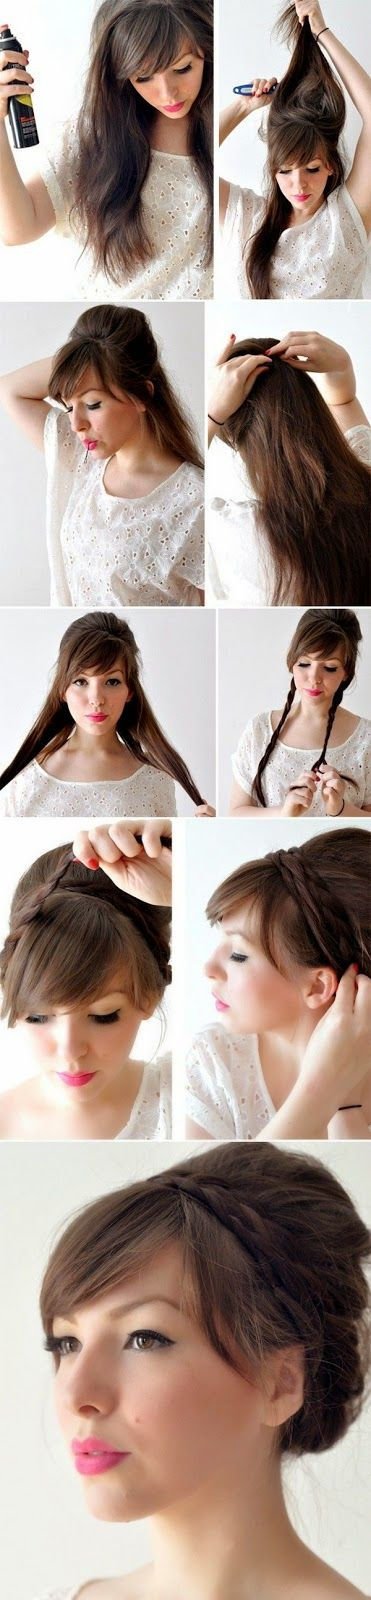 5 Quick and Simple Updo Hairstyles for Medium Hair